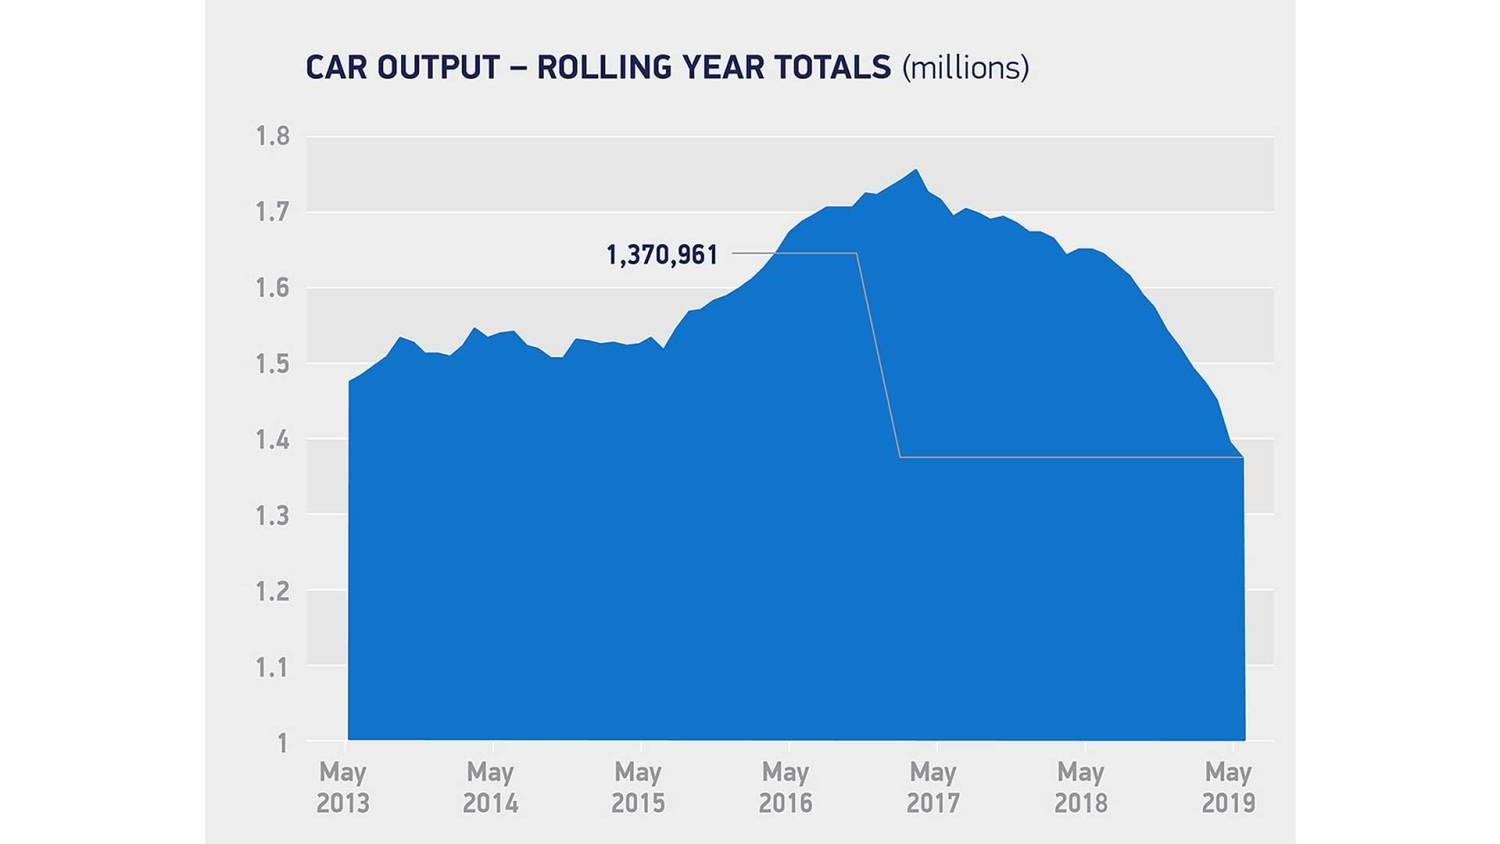 UK car output rolling year totals: May 2013-2019